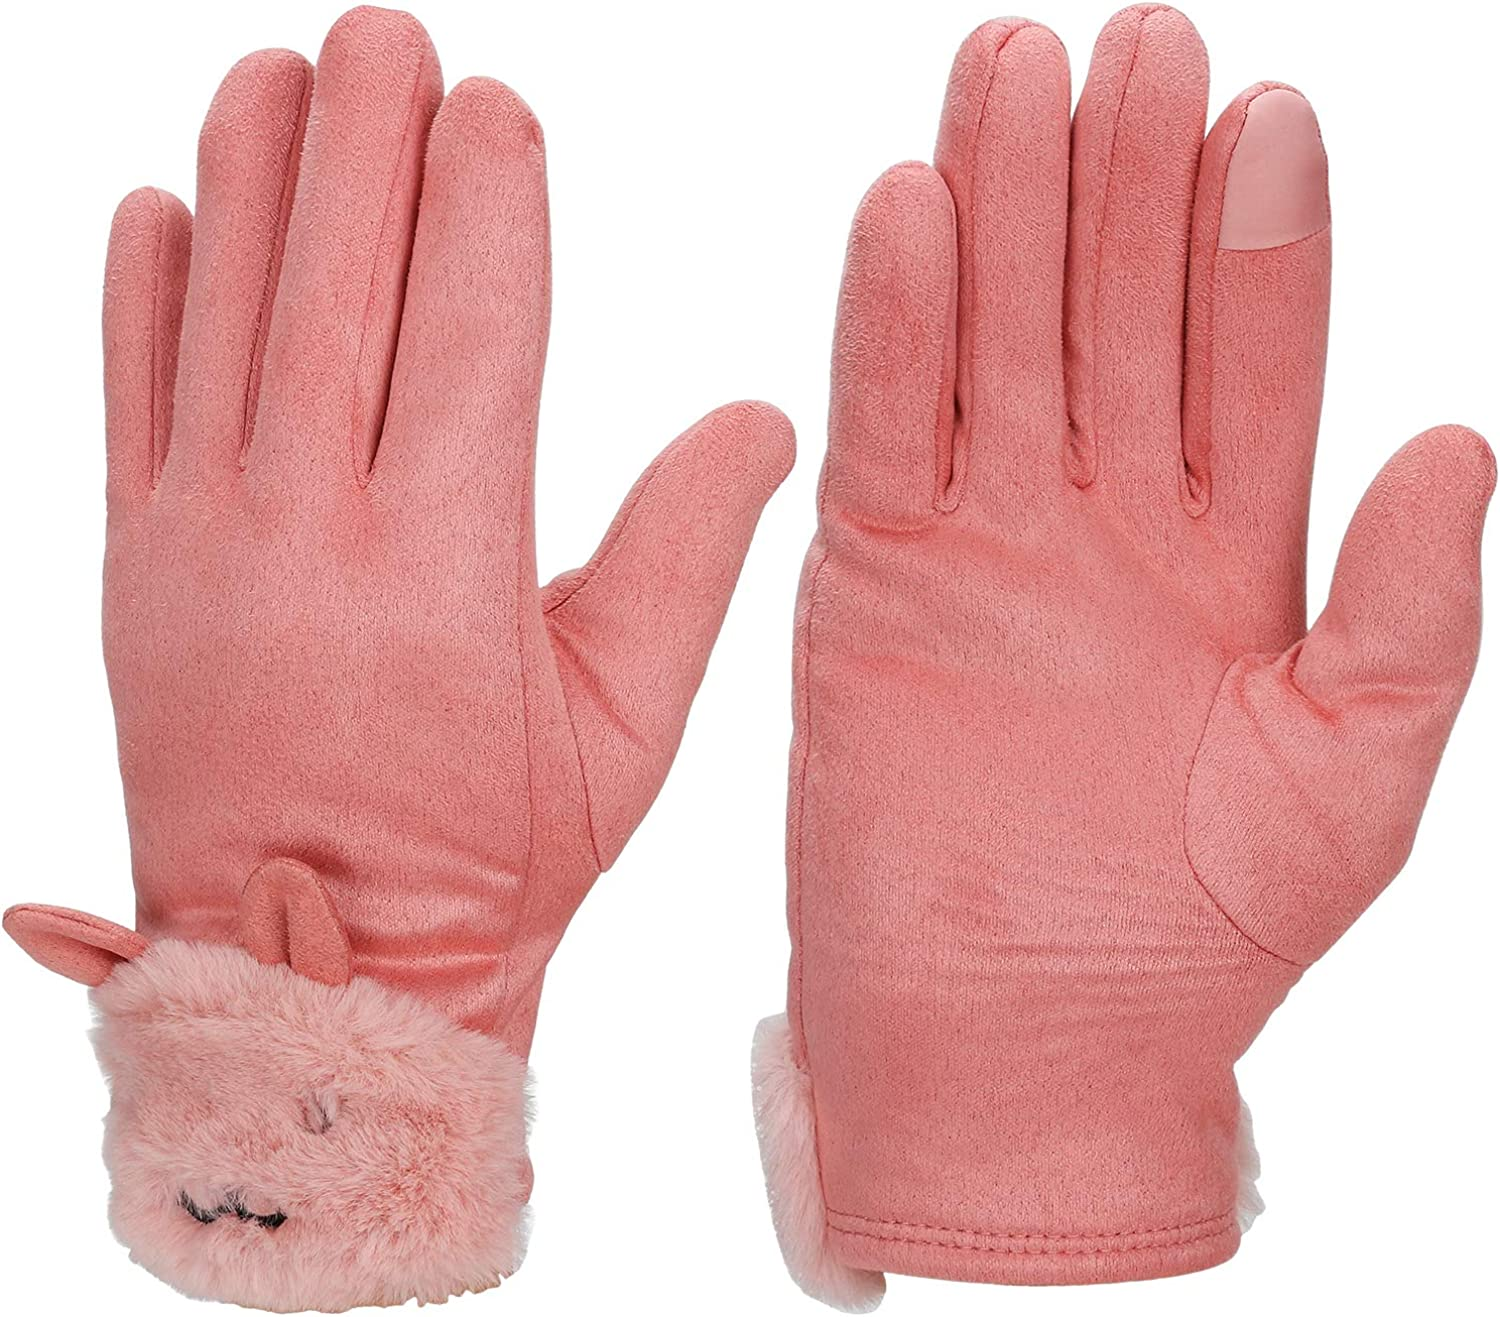 WIOR Women's Winter Touchscreen Texting Gloves, Thermal Soft Fleece Lined Suede Gloves with Faux Fur Cuff, Warm Winter Thick Windproof Snow Gloves for Women Girls Running Driving Cycling Skiing - Pink